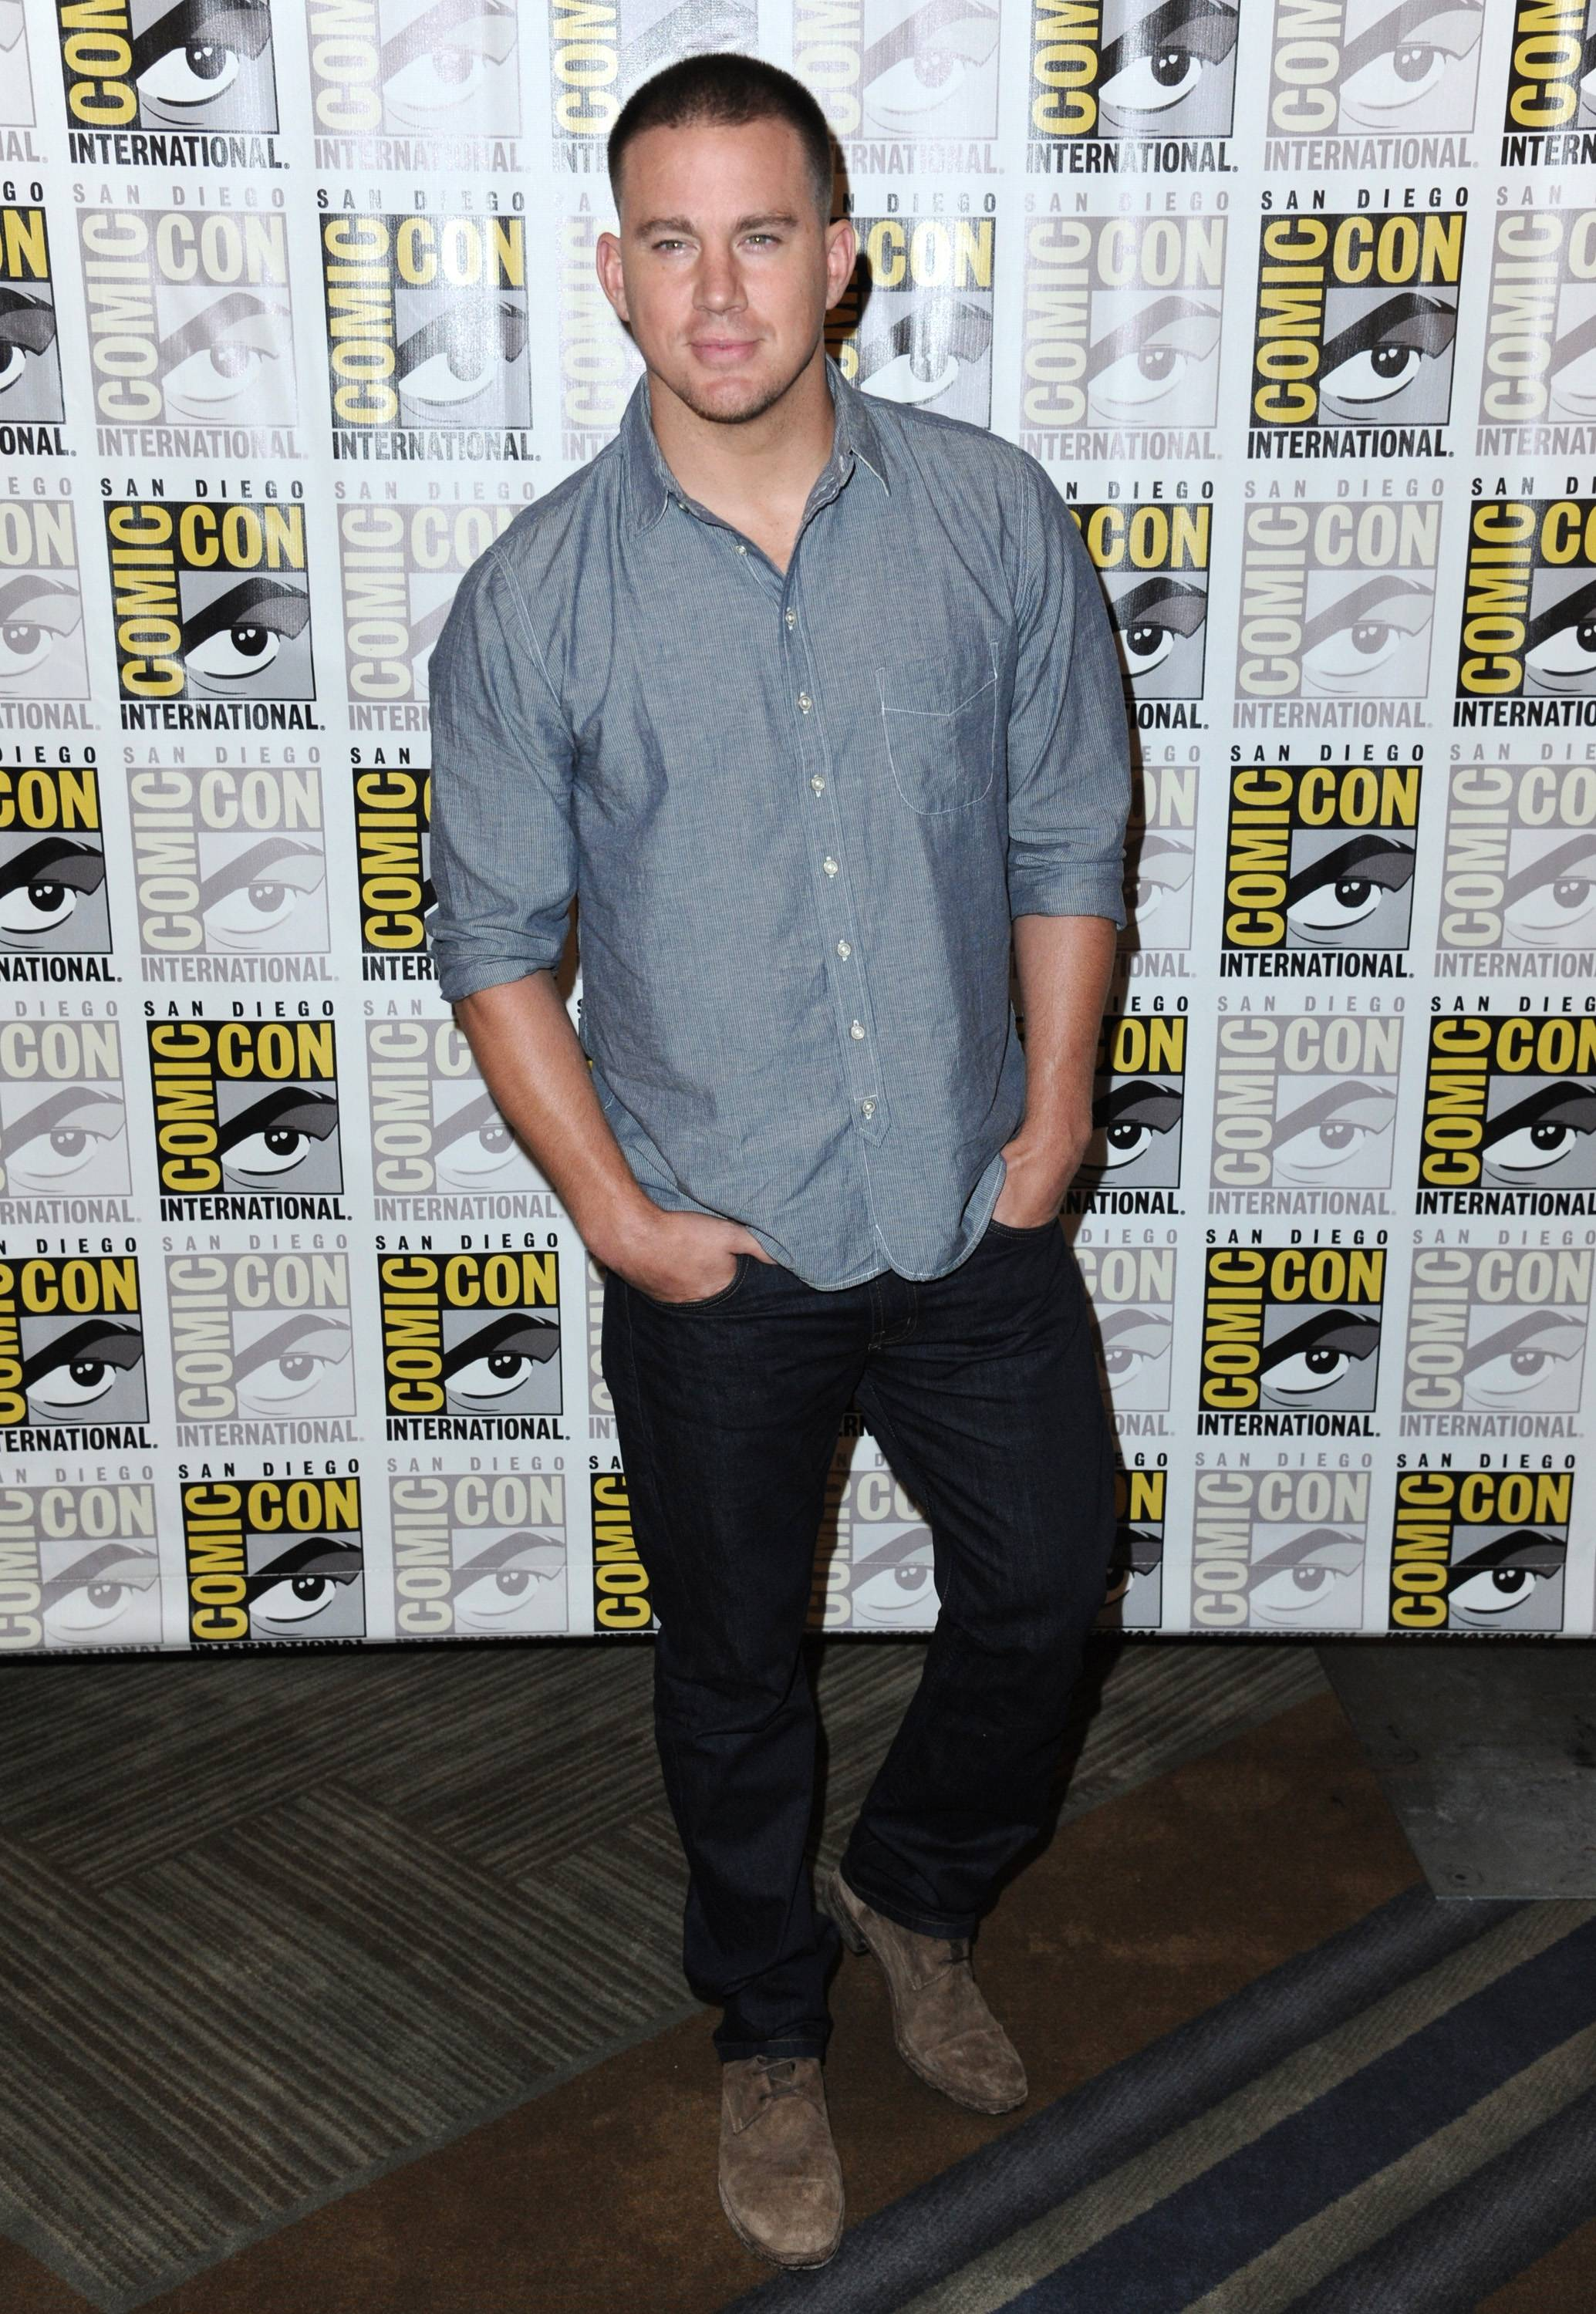 Channing Tatum attends 20th Century Fox press line on Day 2 of Comic-Con International on Friday.